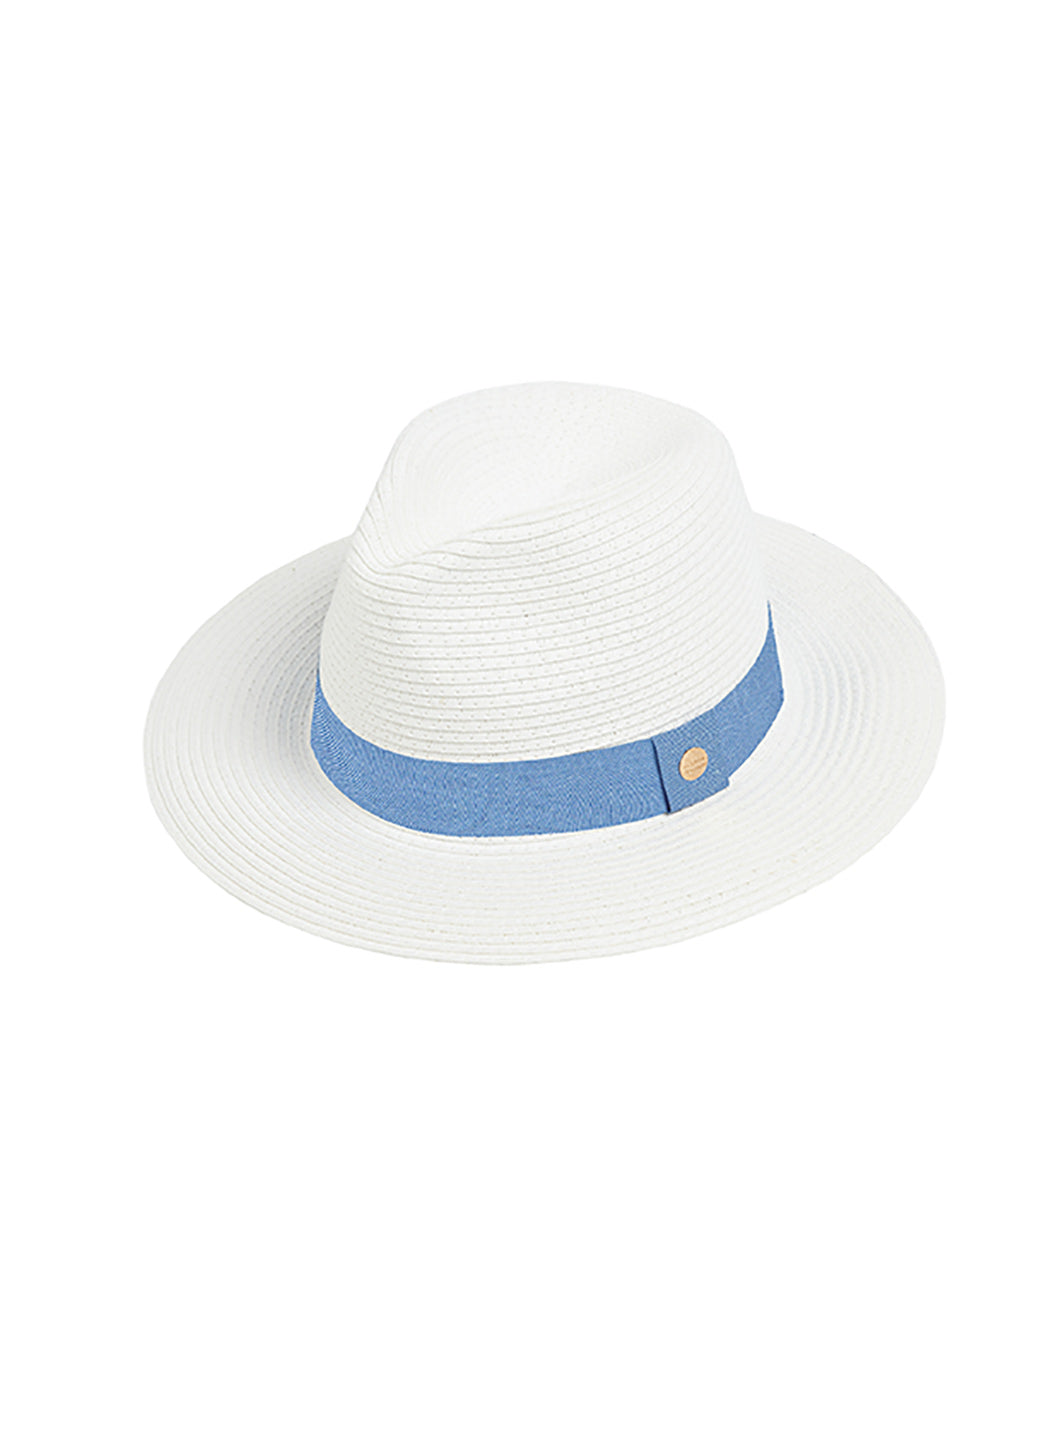 Fedora Hat White/Denim